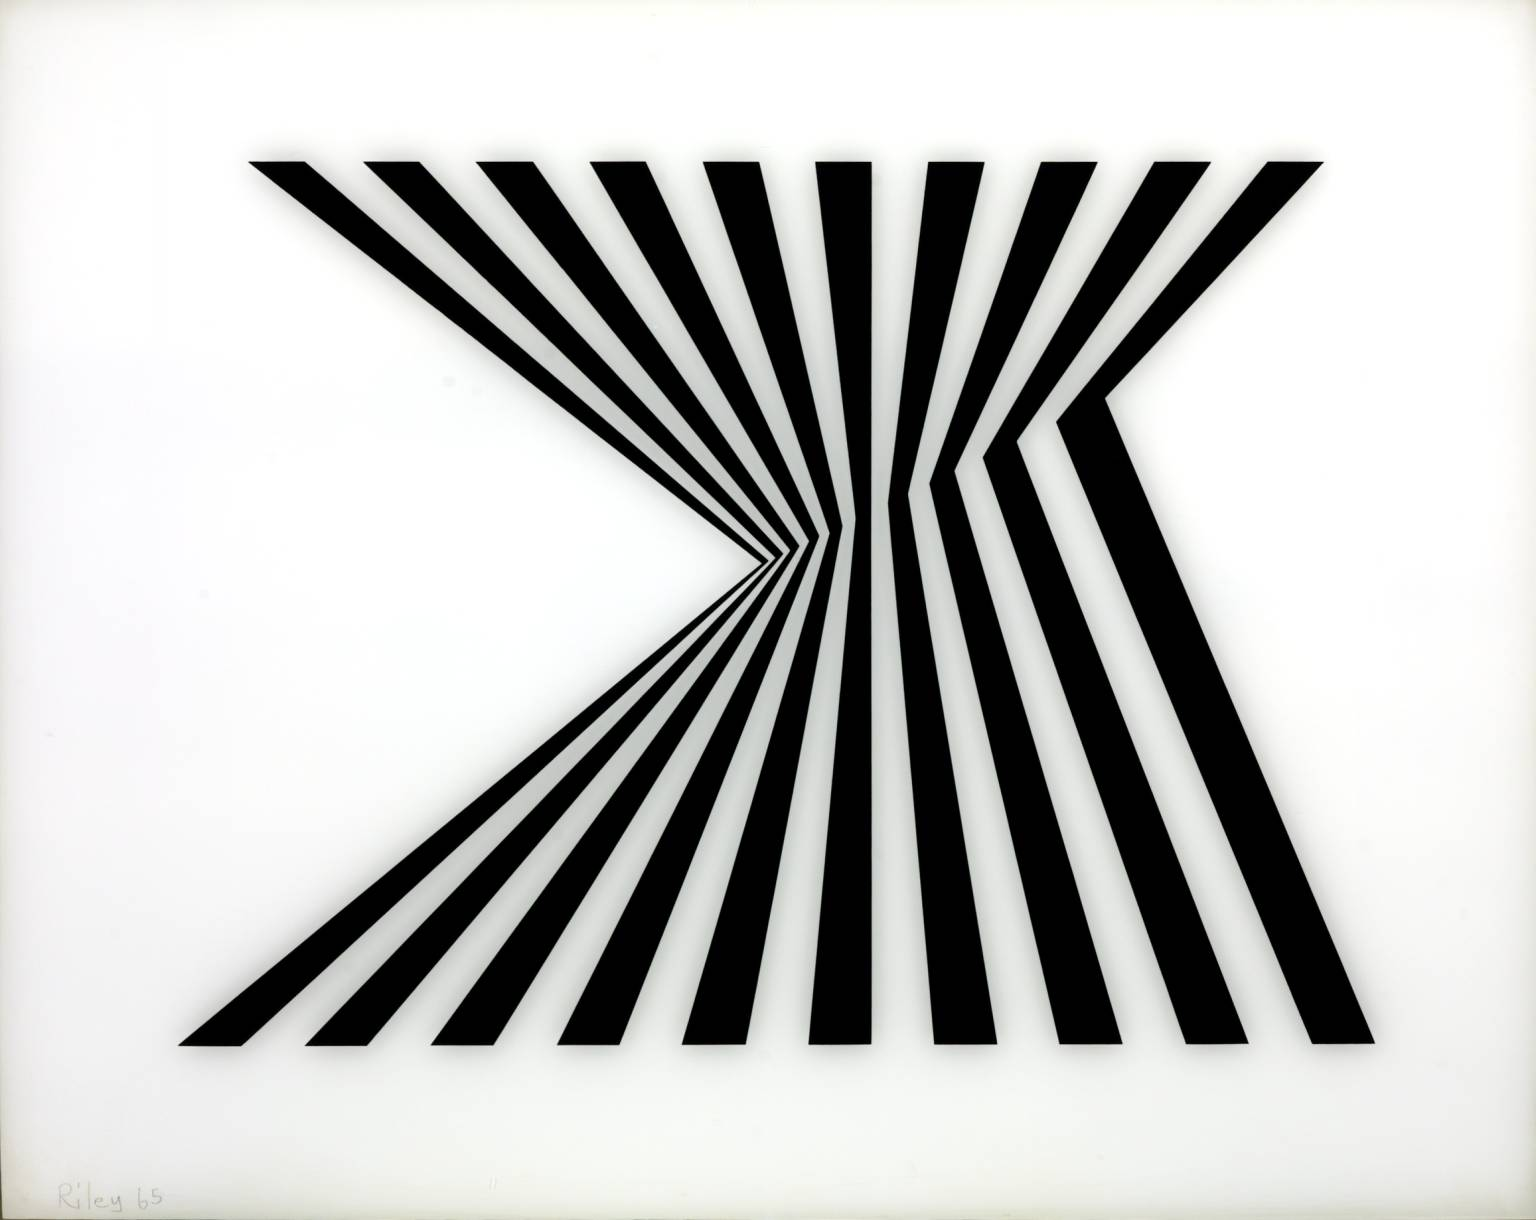 The Work of Bridget Riley: Juxtapoz-BridgetRiley17.jpg